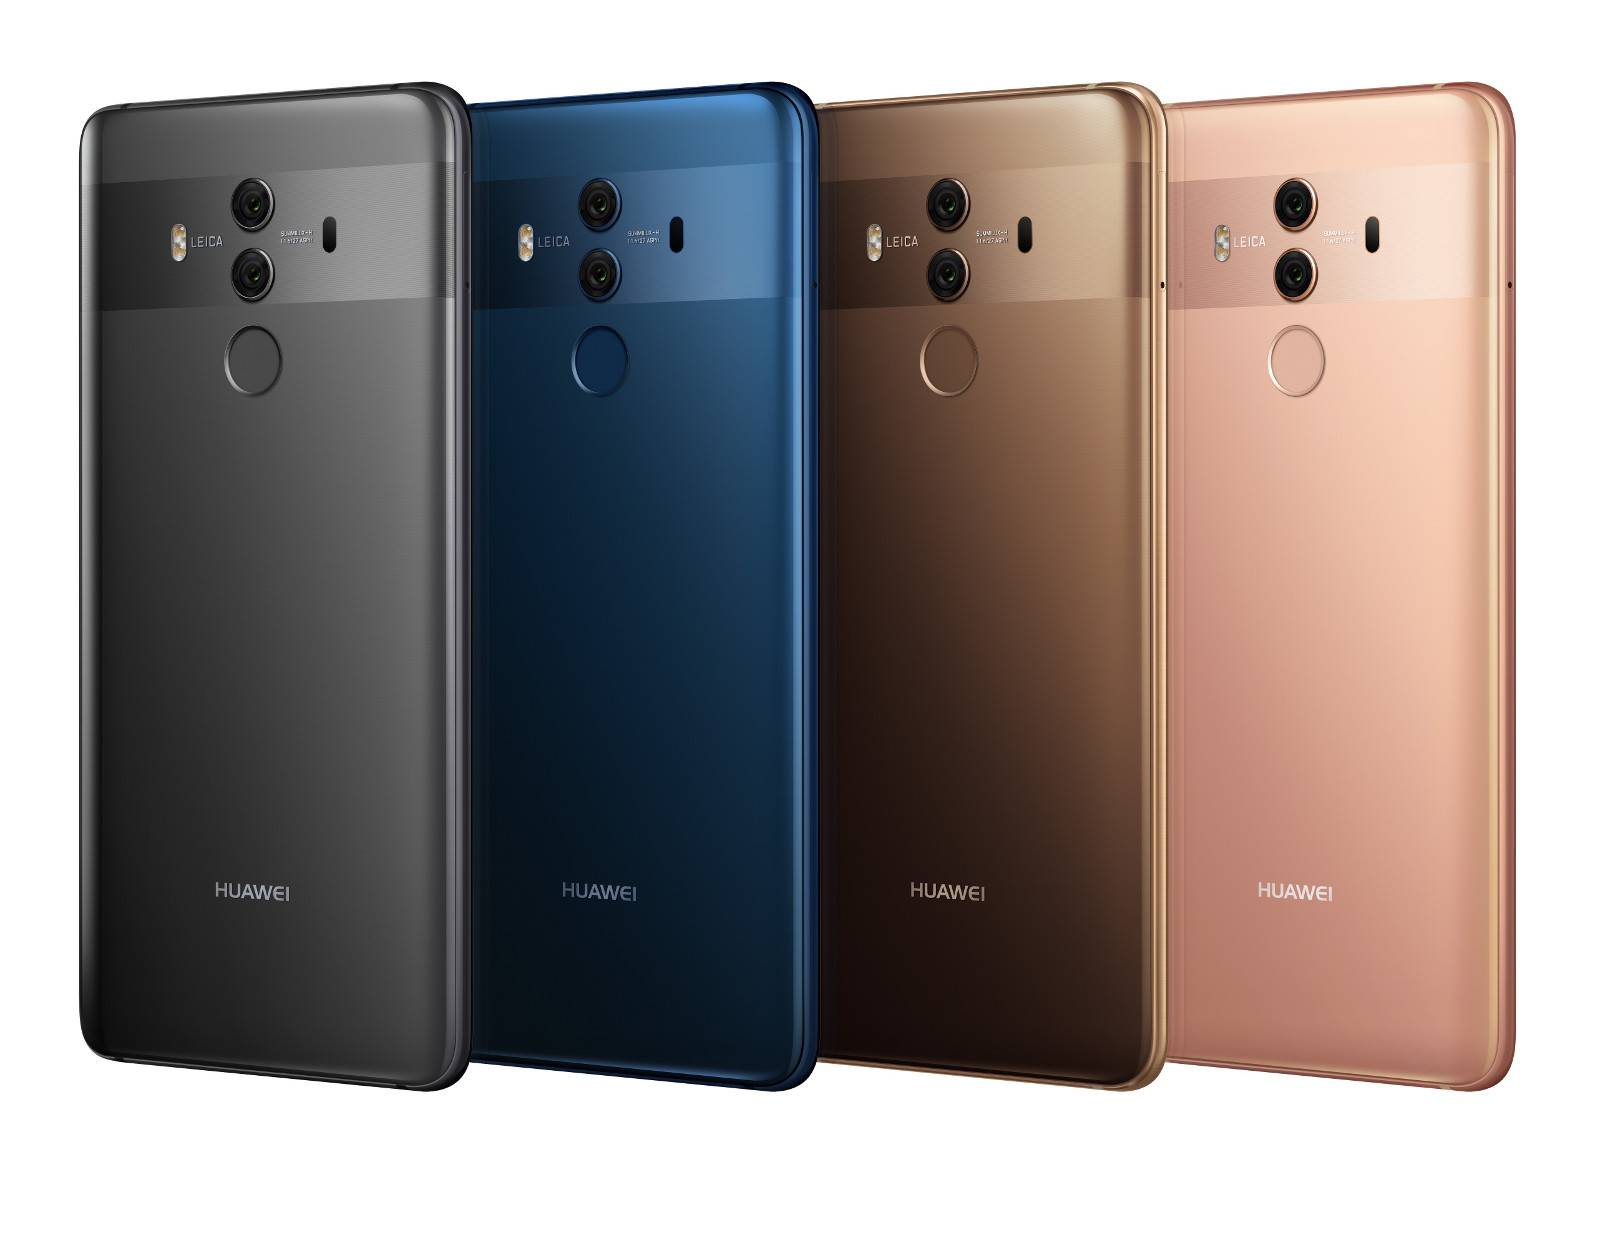 Oreo AOSP ROM boots on Huawei Mate 10, Mate 10 Pro, confirms